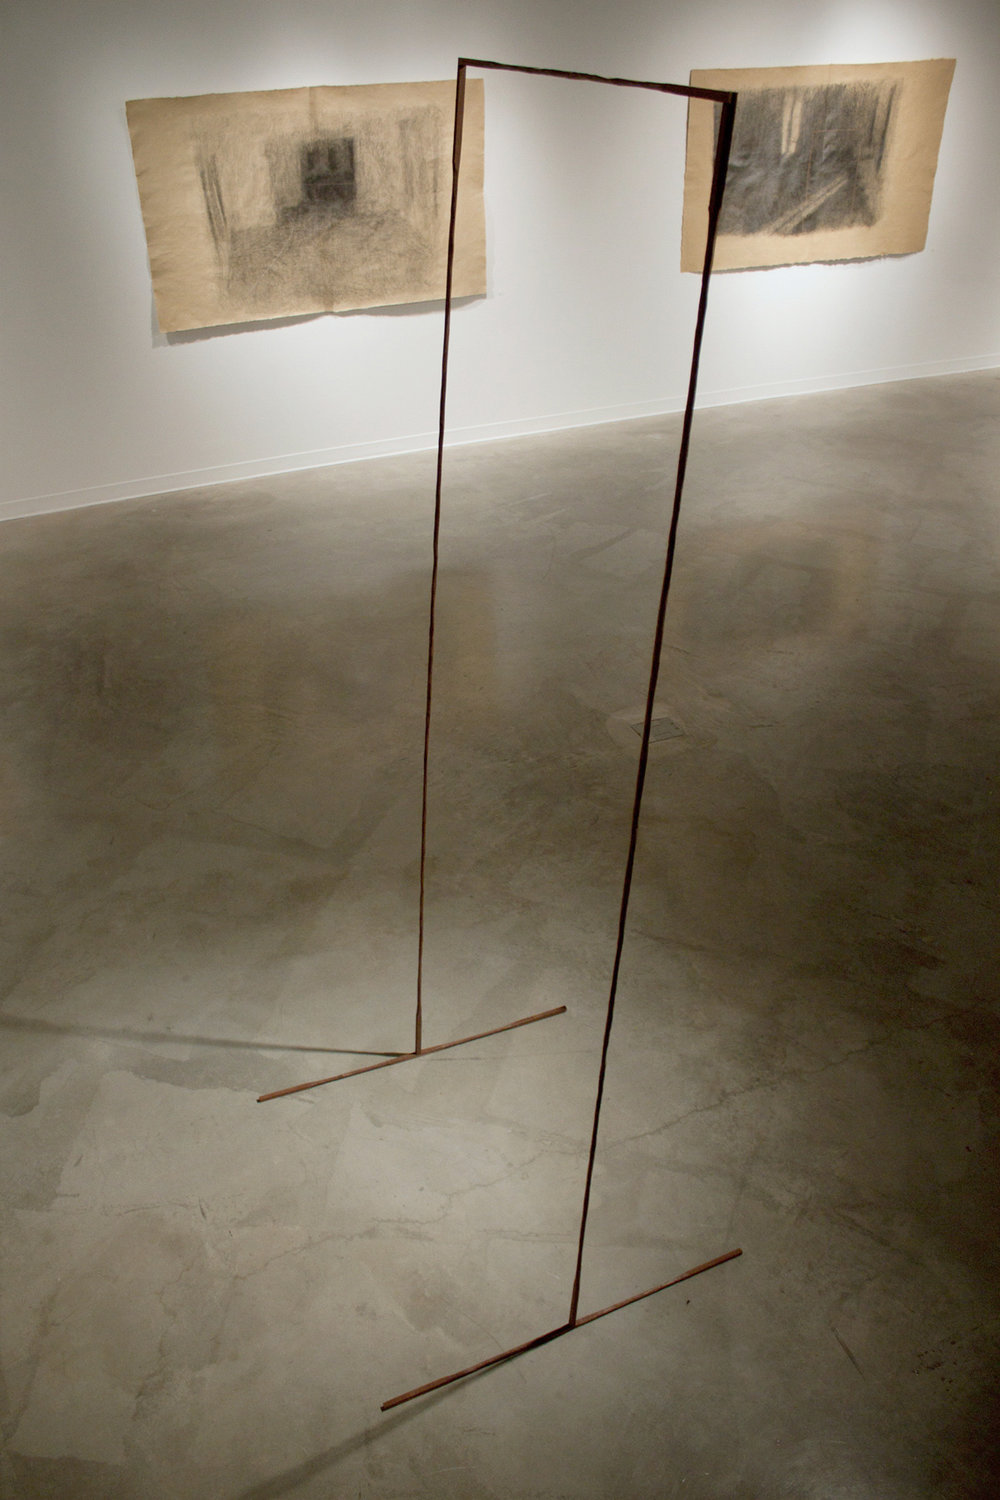 Connect , 2014, wood, 38 x 36 x 96 in. Pictured at George Mason University, Fairfax, VA